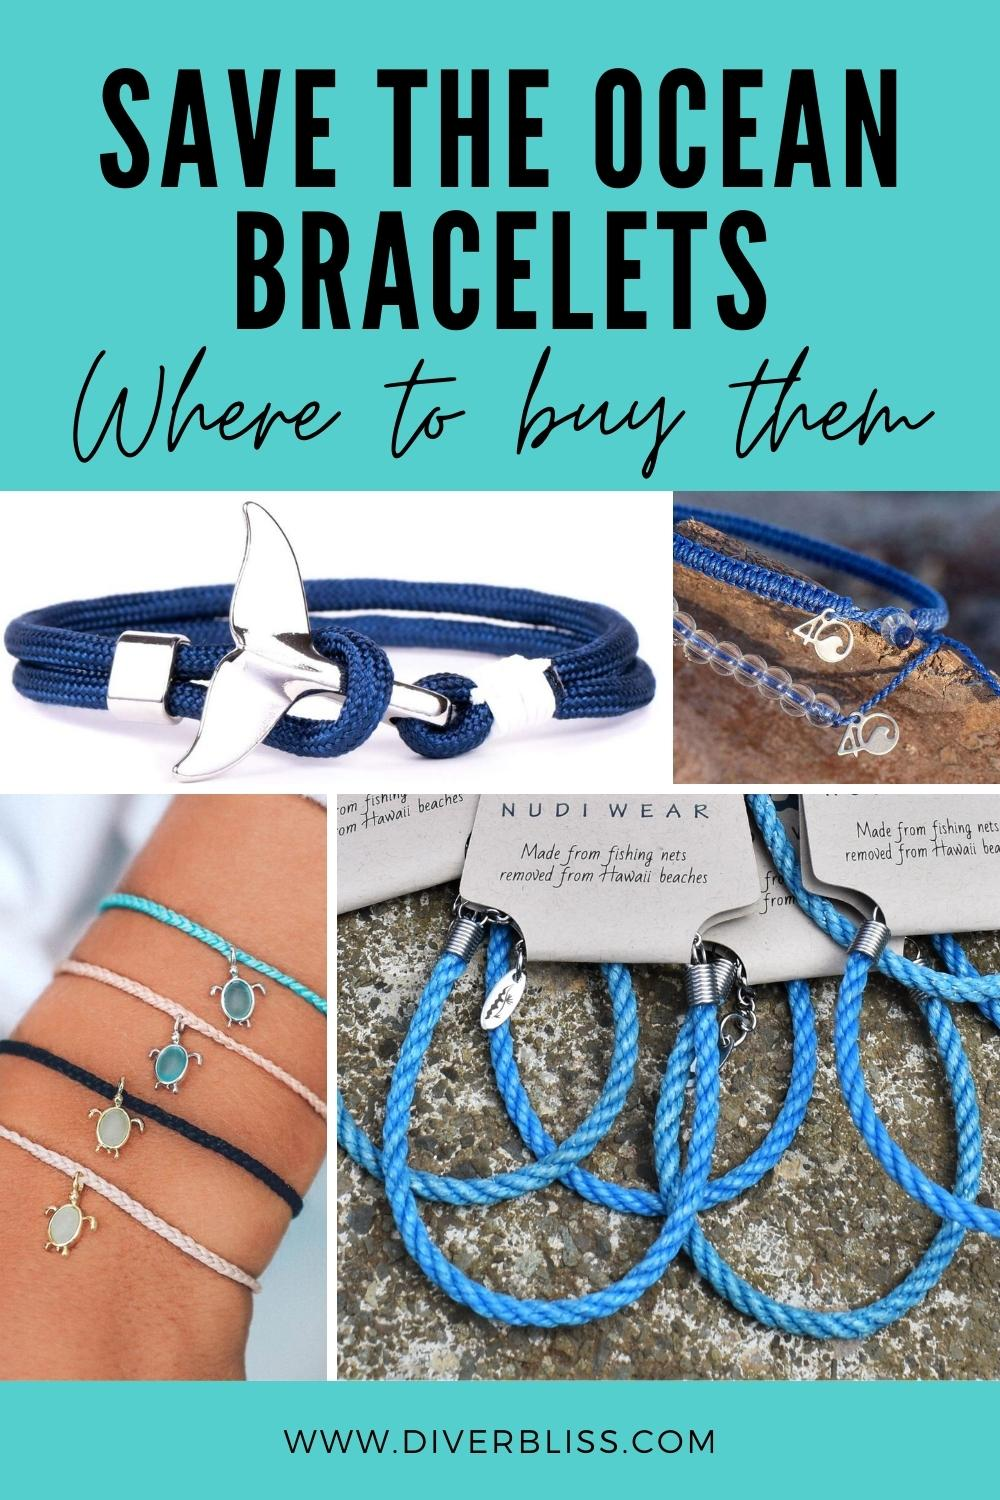 Save the ocean bracelets and where to buy them